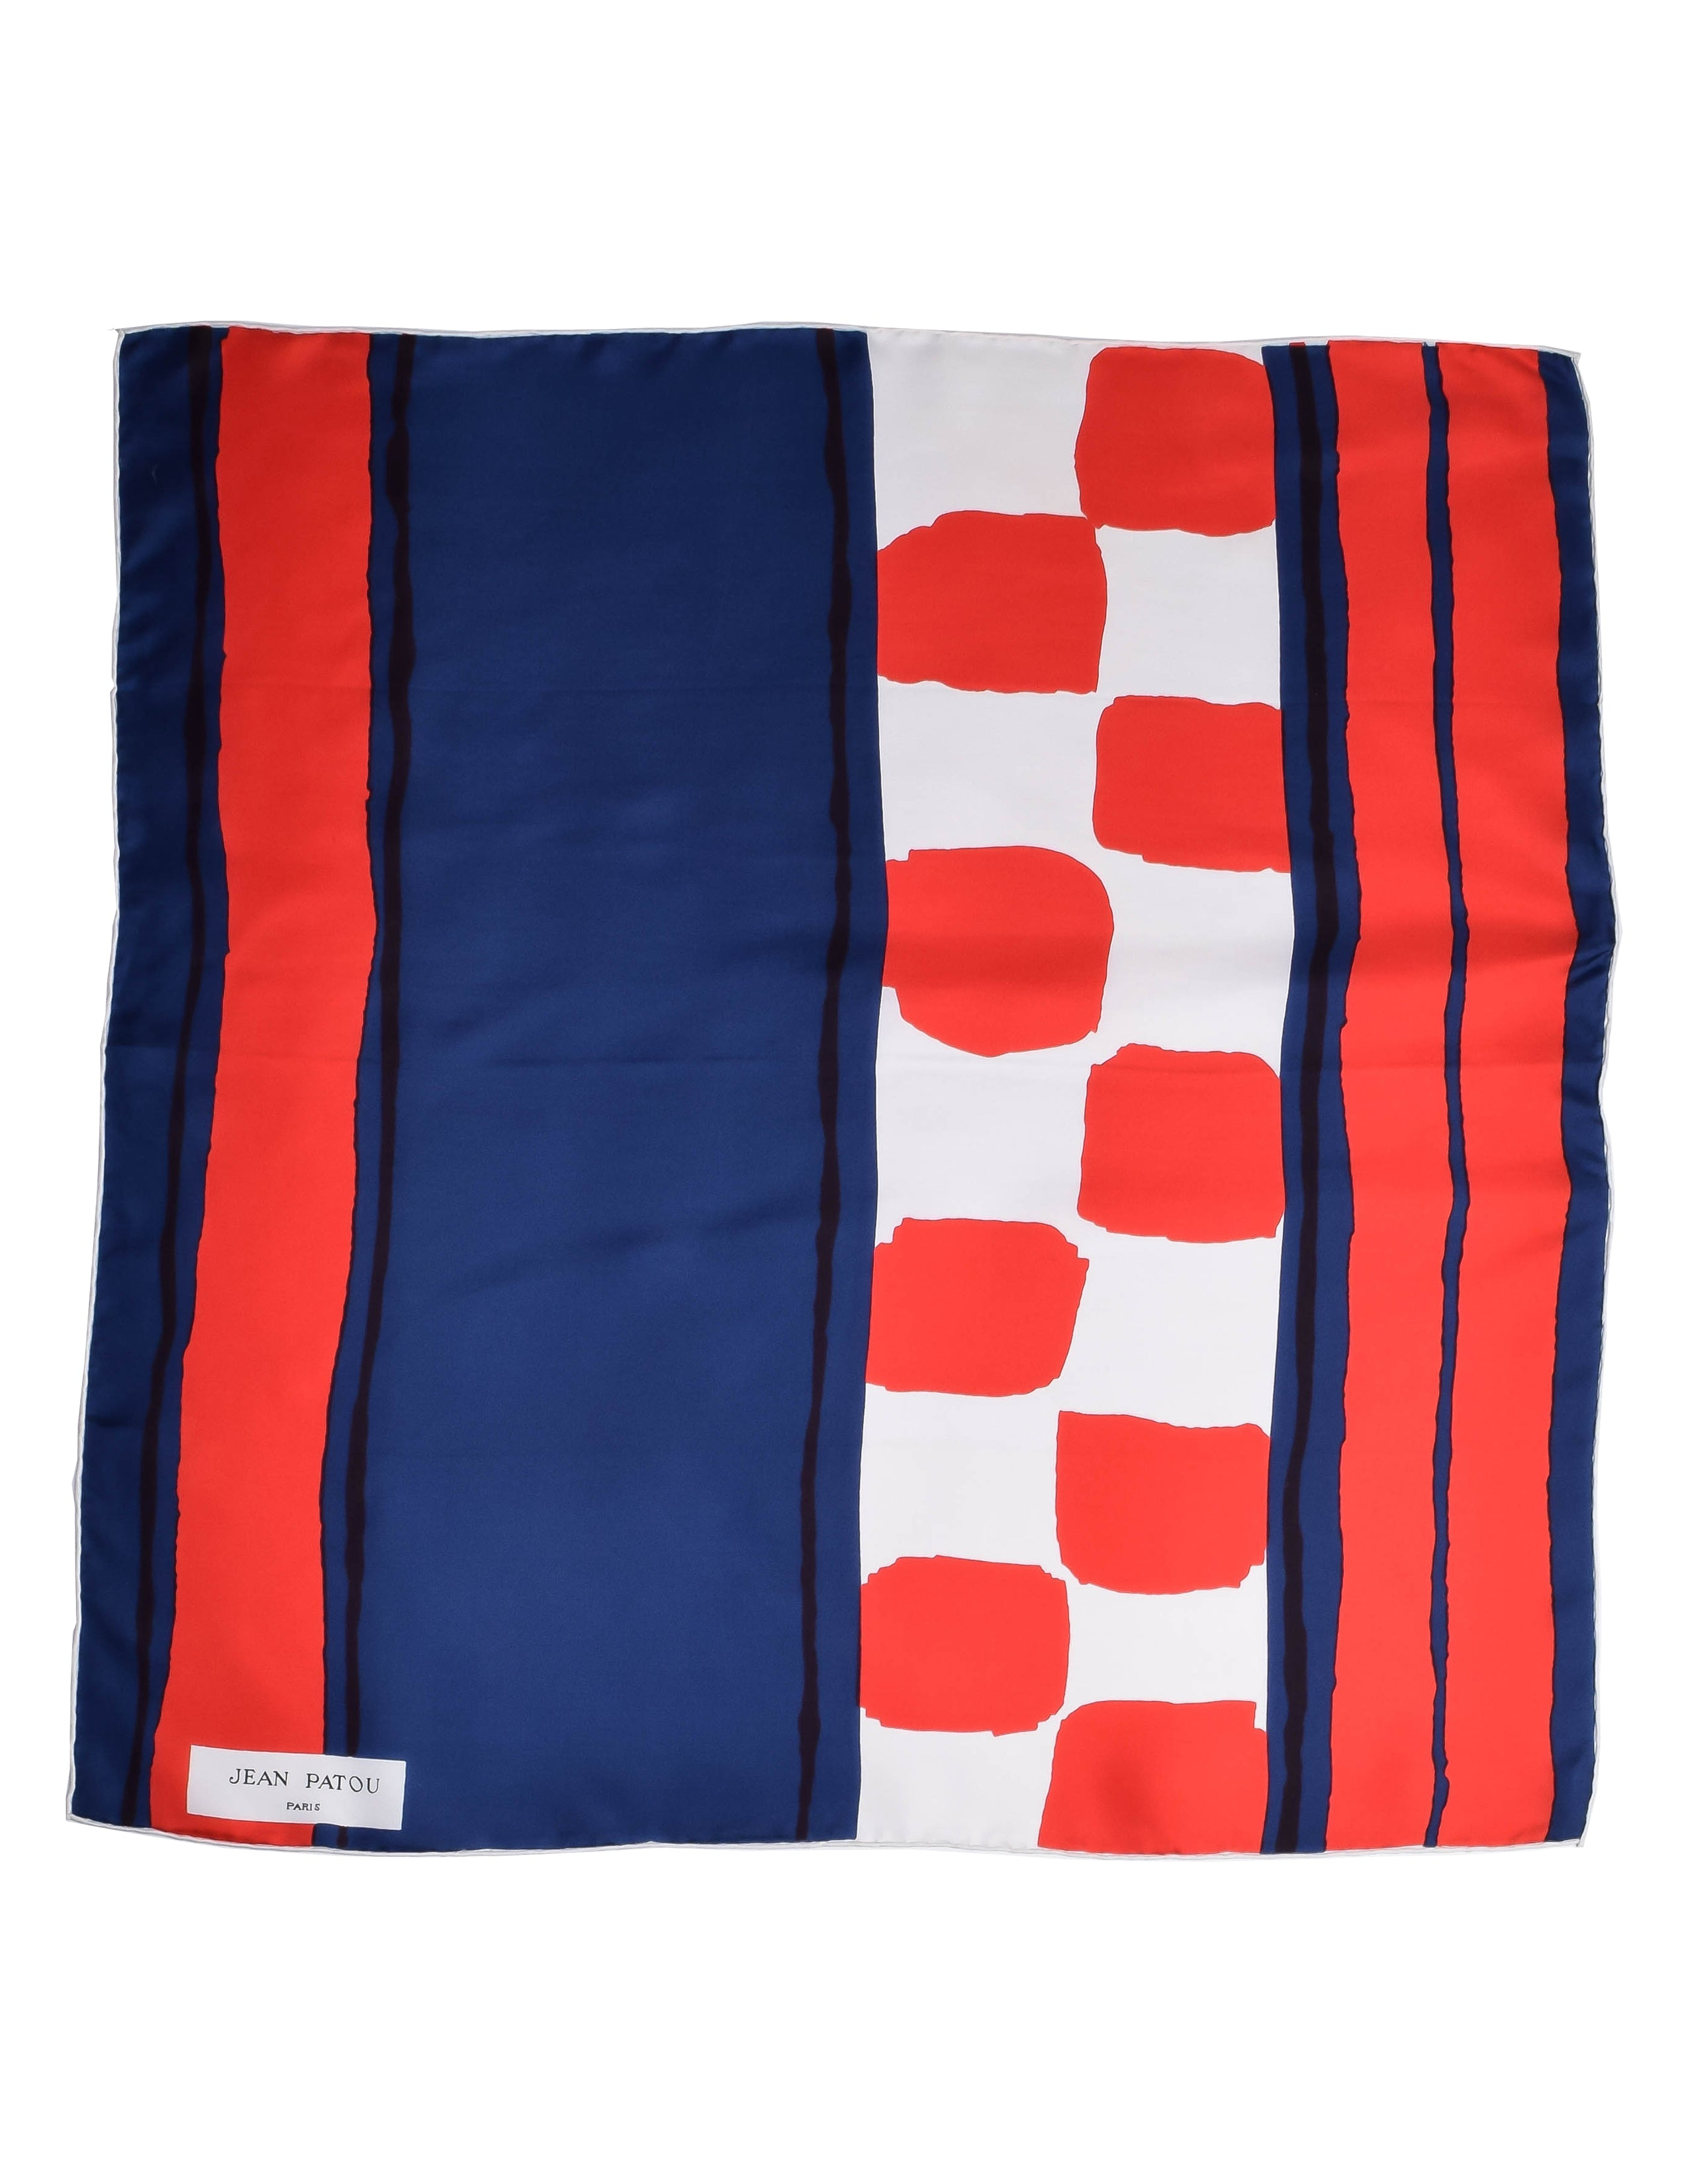 Jean Patou Vintage Red White and Blue Silk Scarf